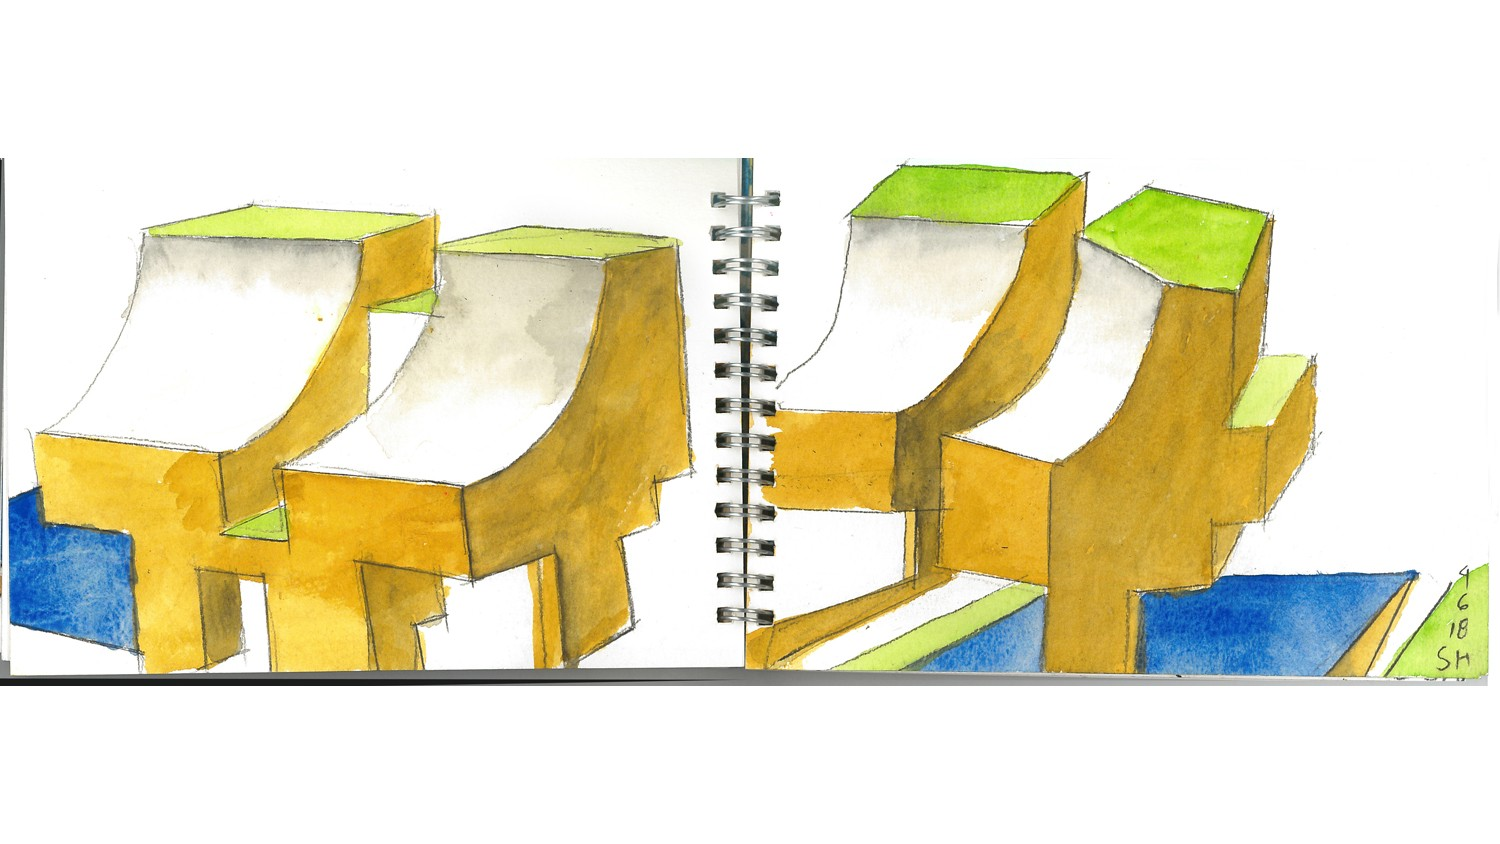 https://s3.us-east-2.amazonaws.com/steven-holl/uploads/projects/project-images/cifi-watercolor.jpg